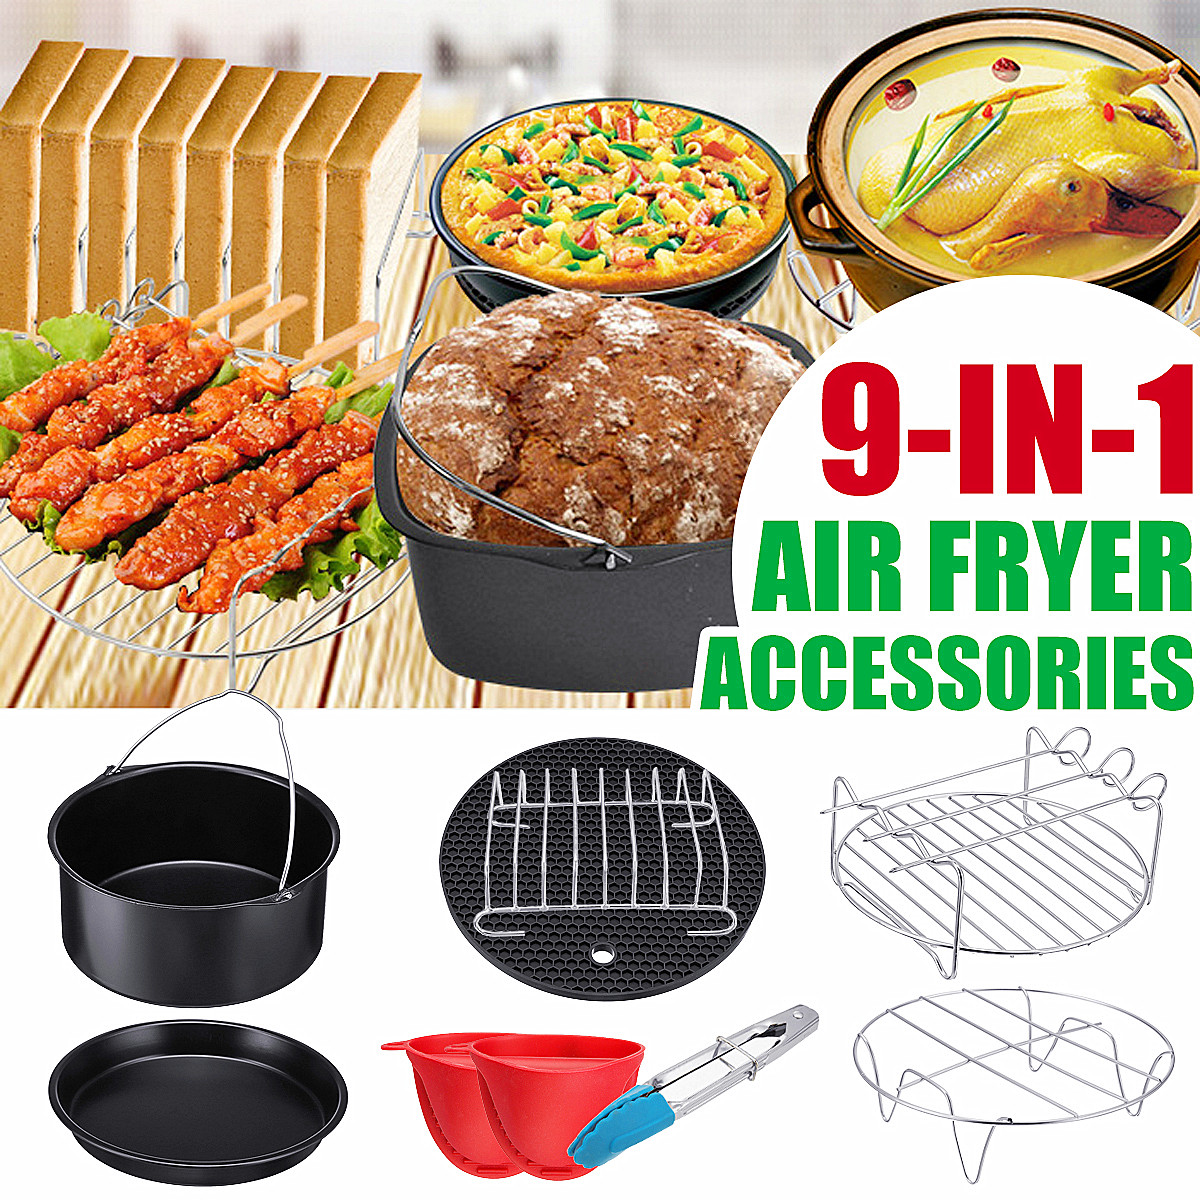 9 In 1 Set Air Fryer Accessories Kitchen Fryer Pizza Pan Bread Shell Frying Pan Mutifunctional